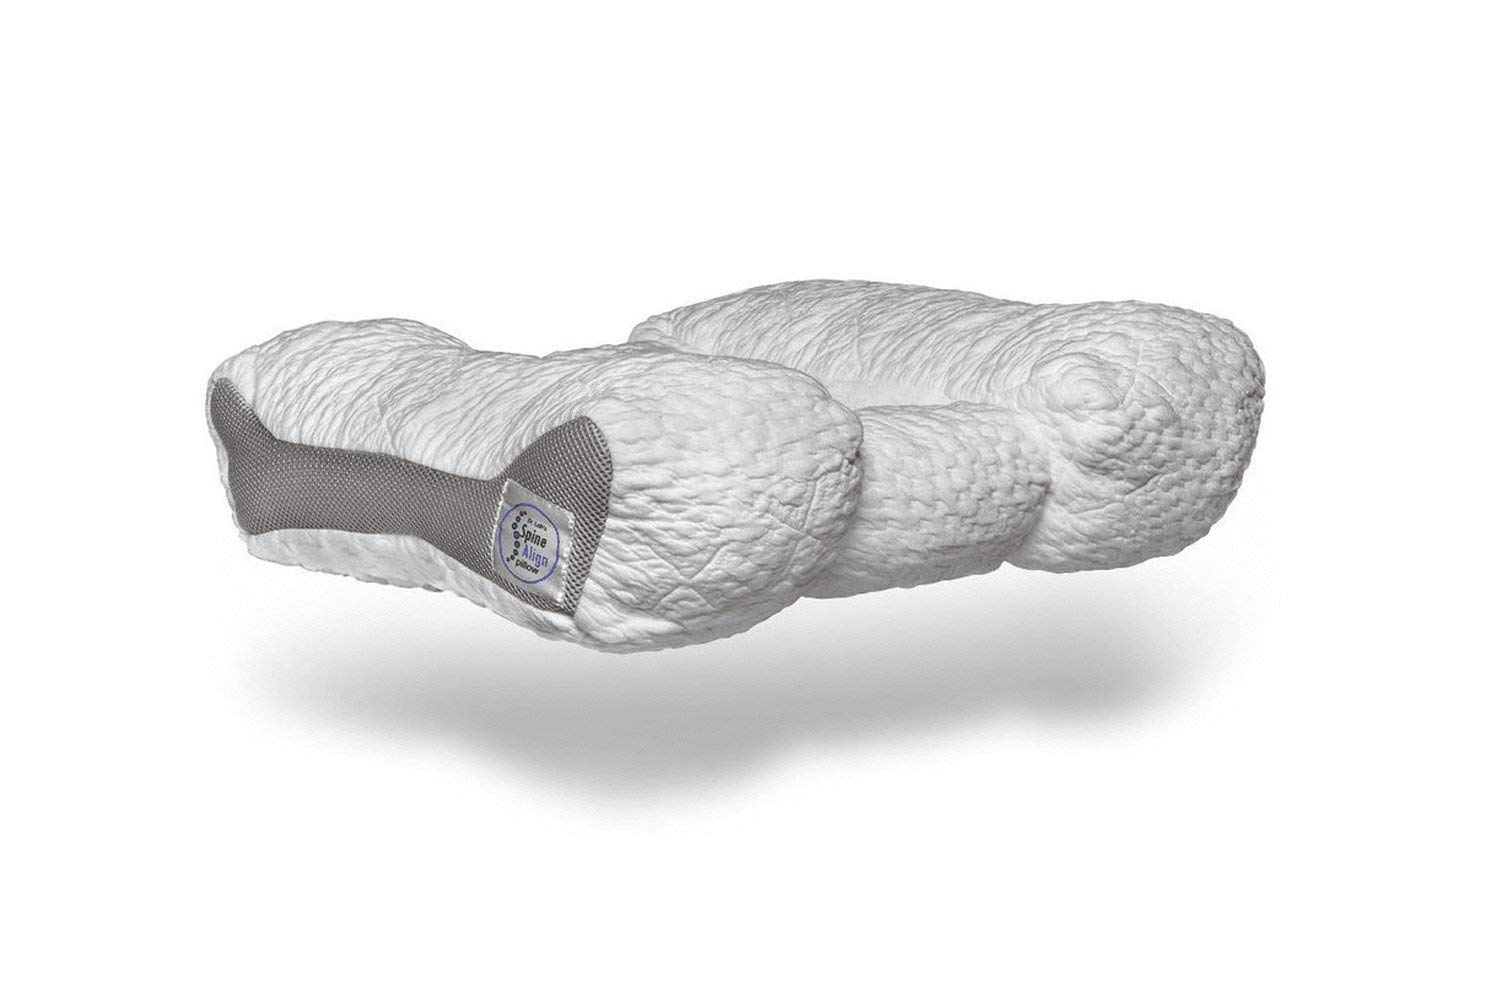 Dr. Loth's Best Pillow for Back Pain review by www.snoremegazine.com